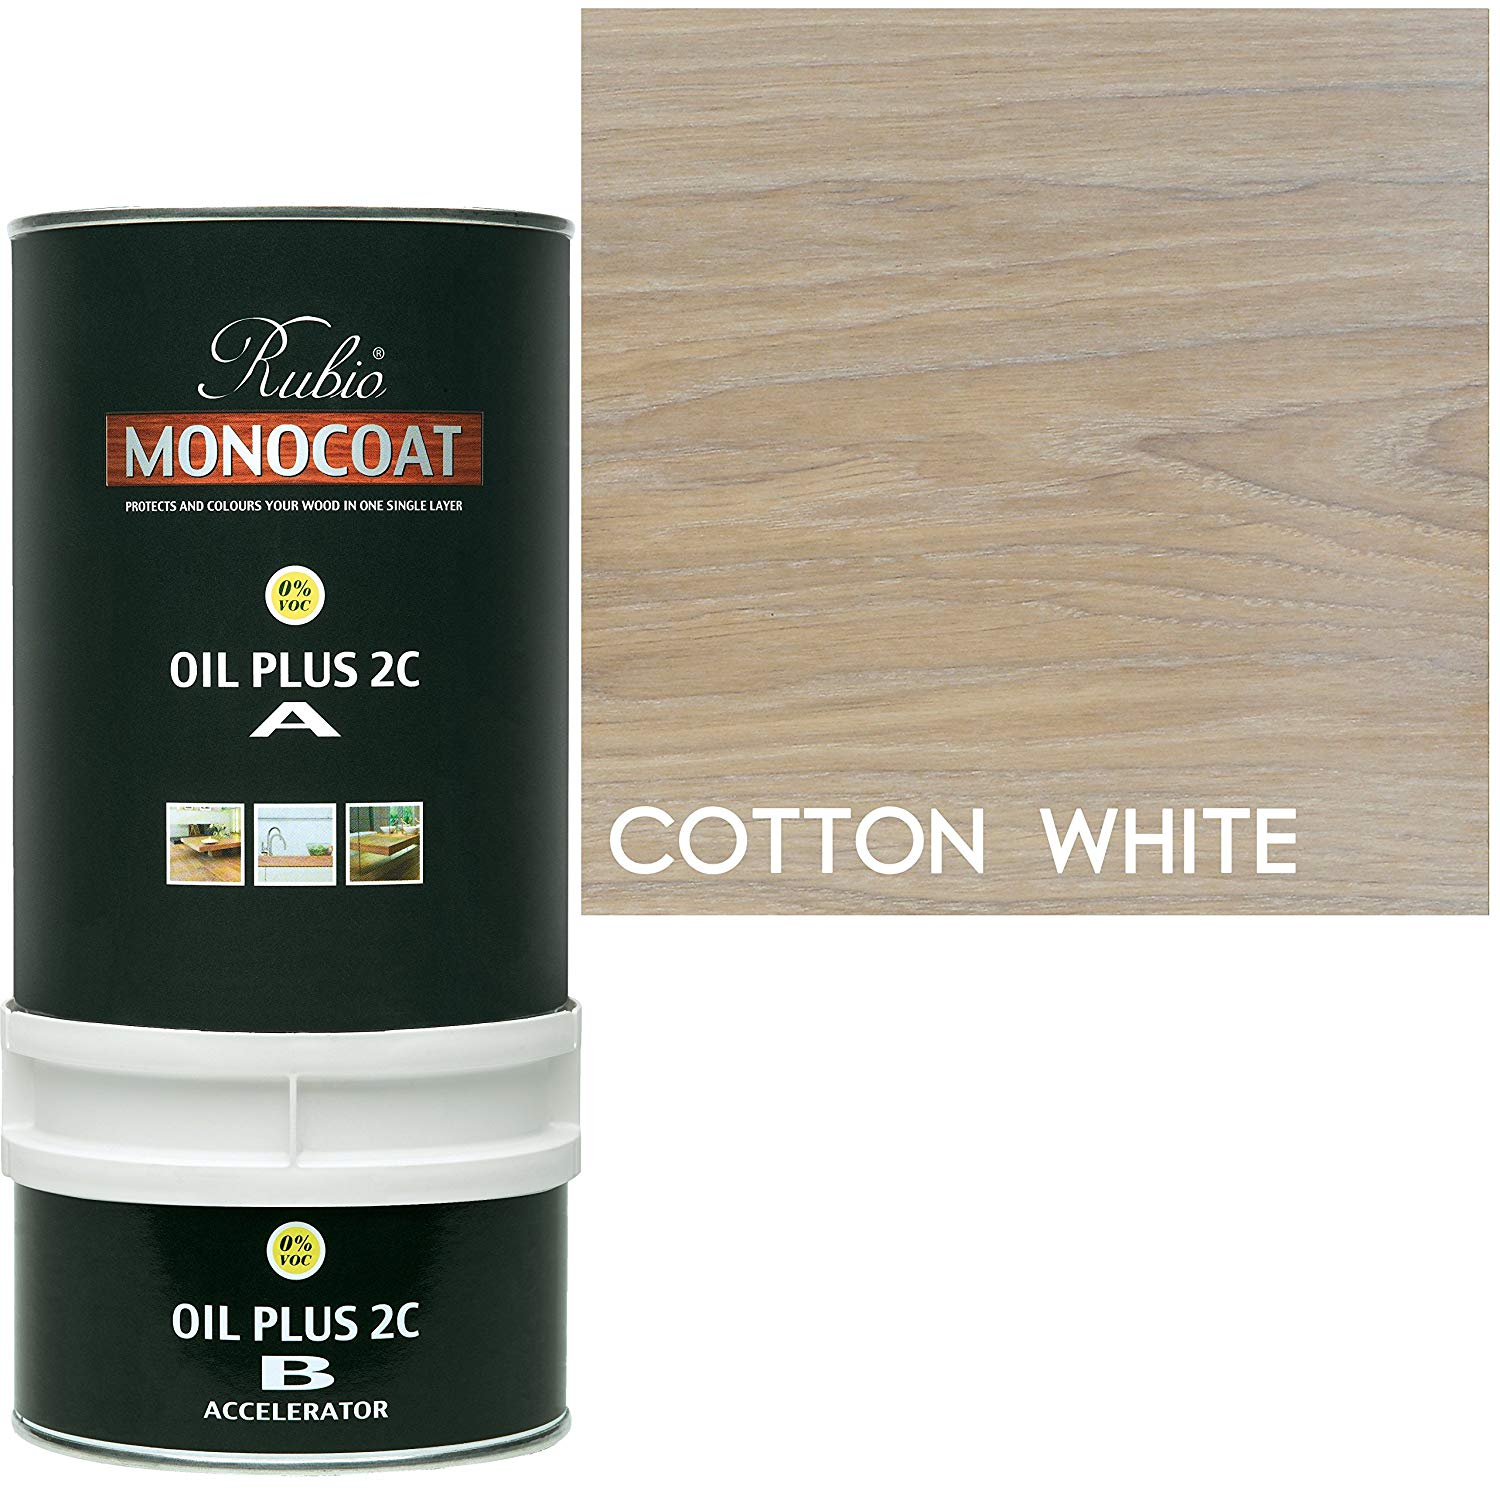 Rubio Monocoat Oil Plus 2C - Cotton white